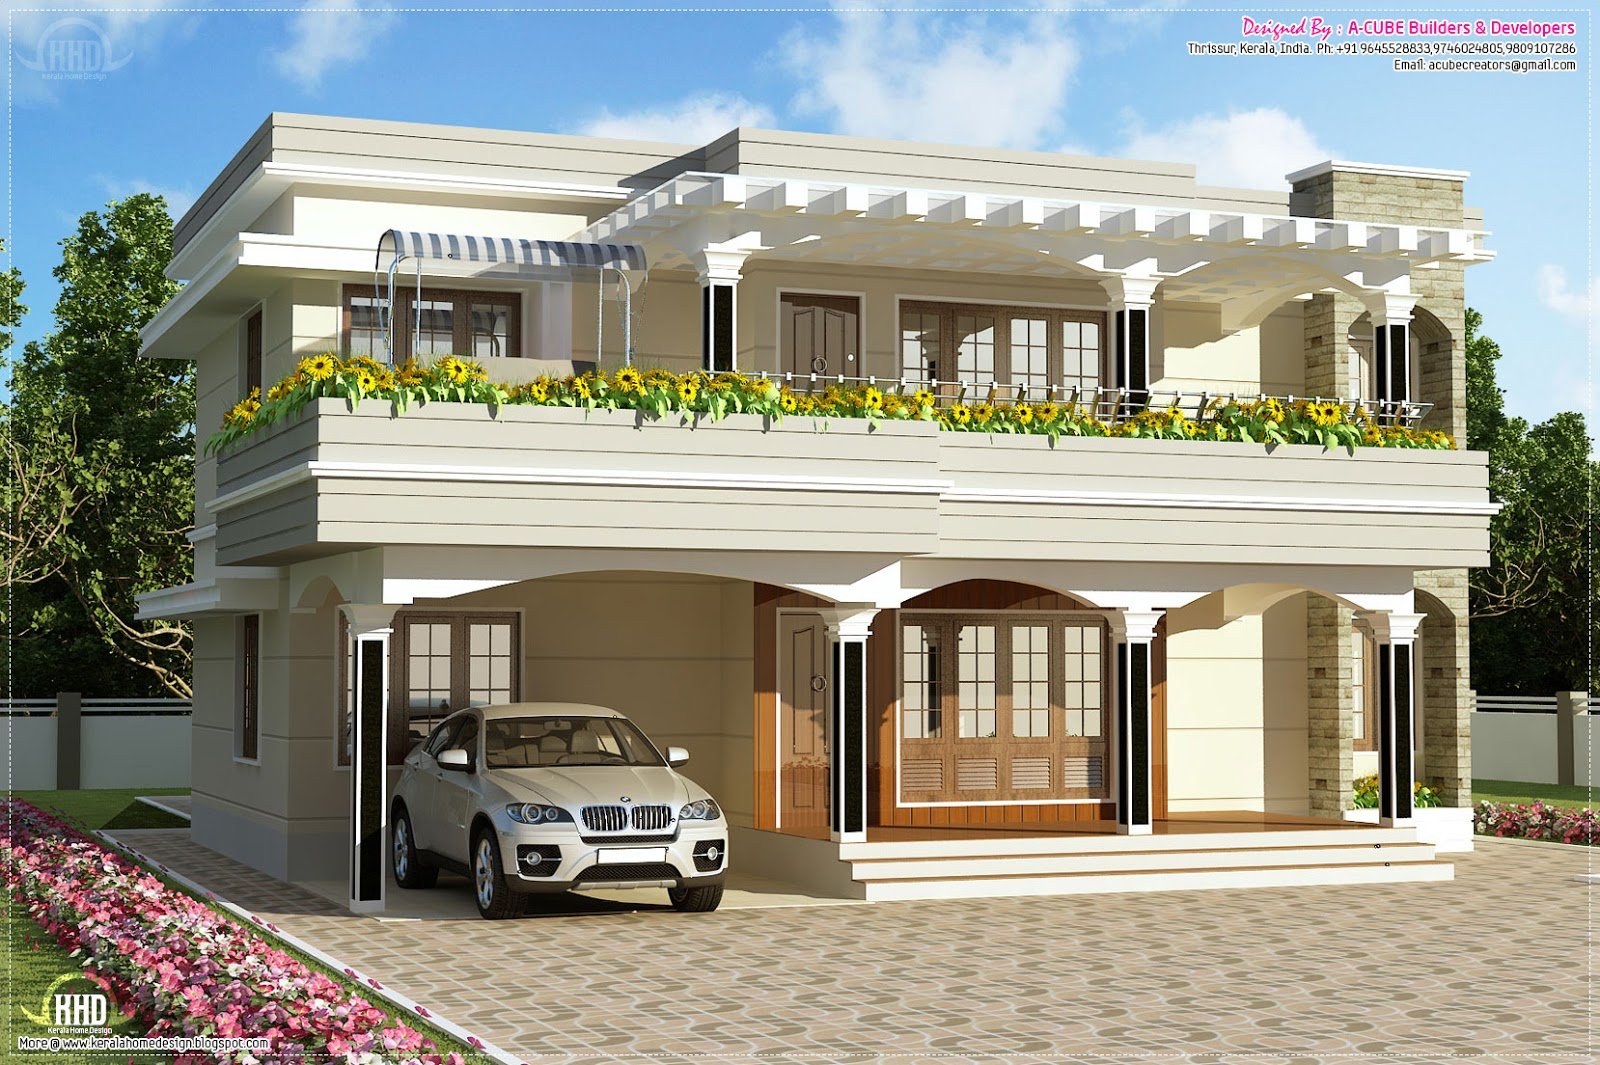 Roof Design Ideas: Modern Flat Roof Villa In 2900 Sq.feet